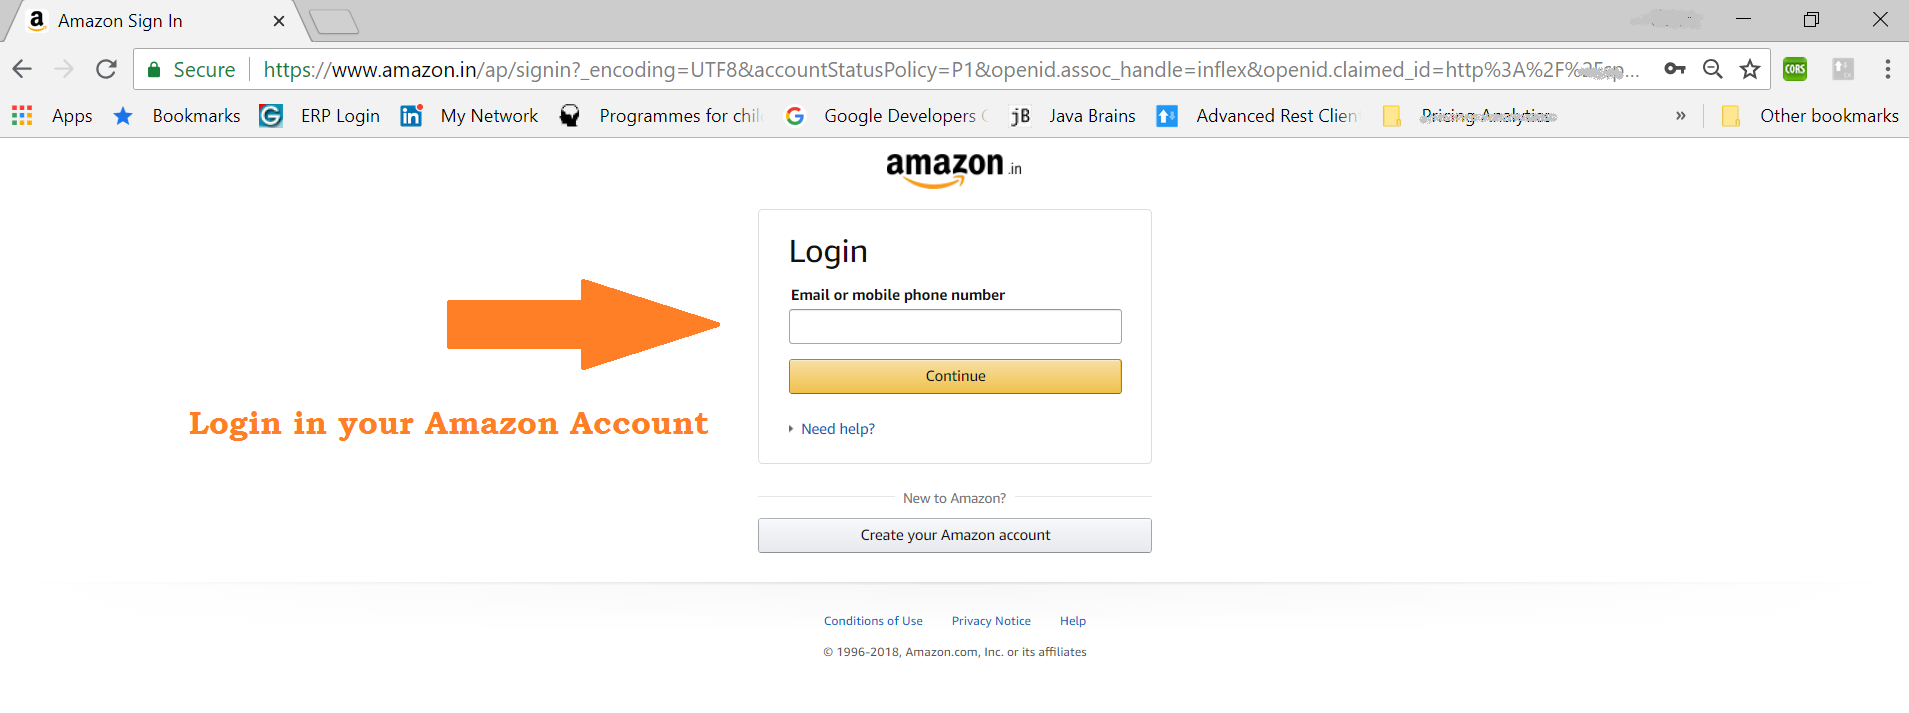 Amazon Email Delivery in India- Amazon Login